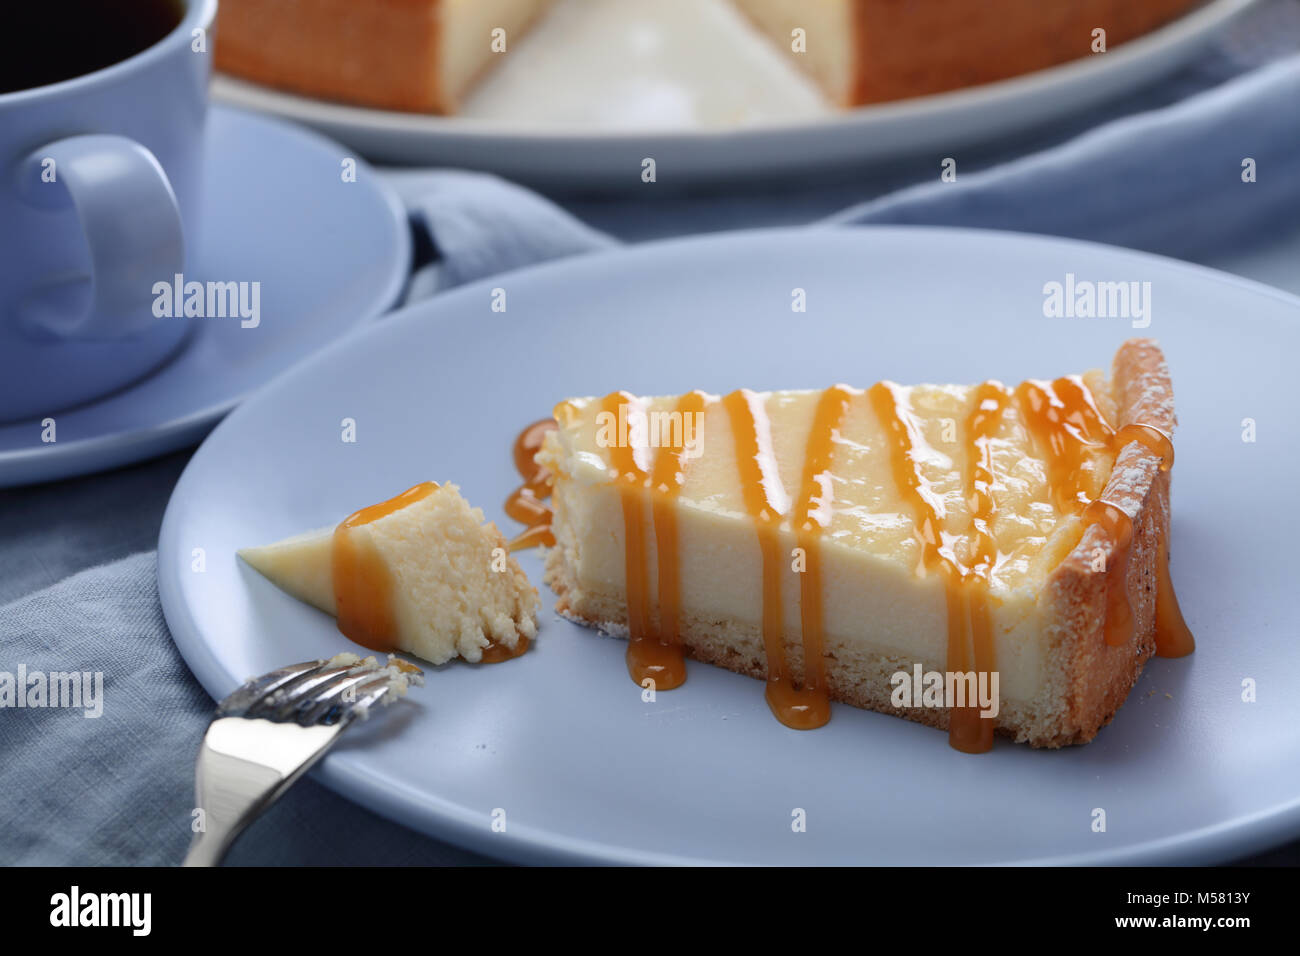 Slice of cheesecake with caramel sauce - Stock Image